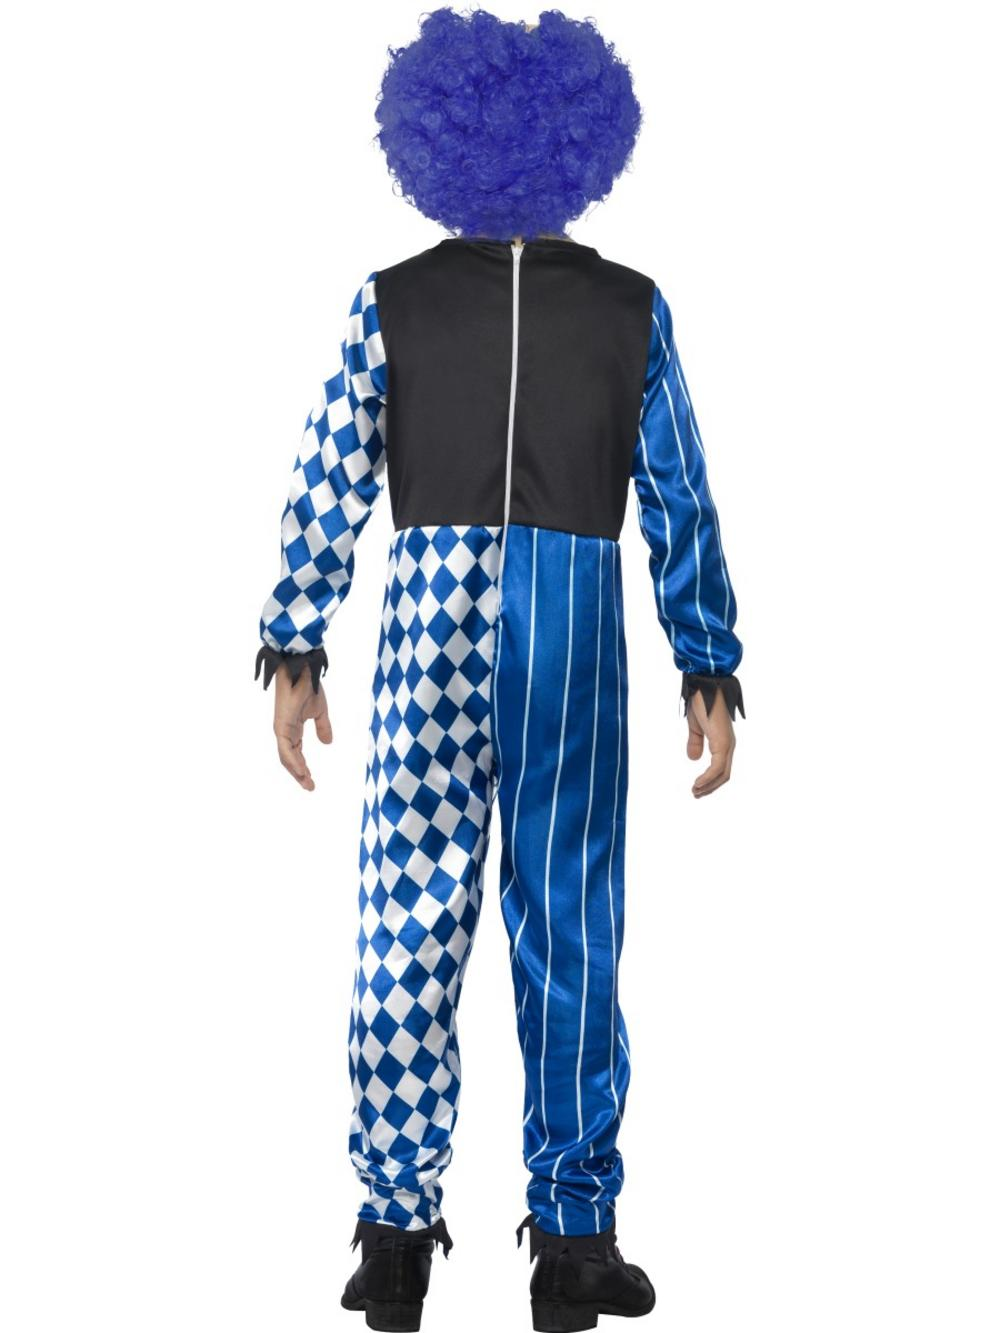 Clown Costumes For Halloween